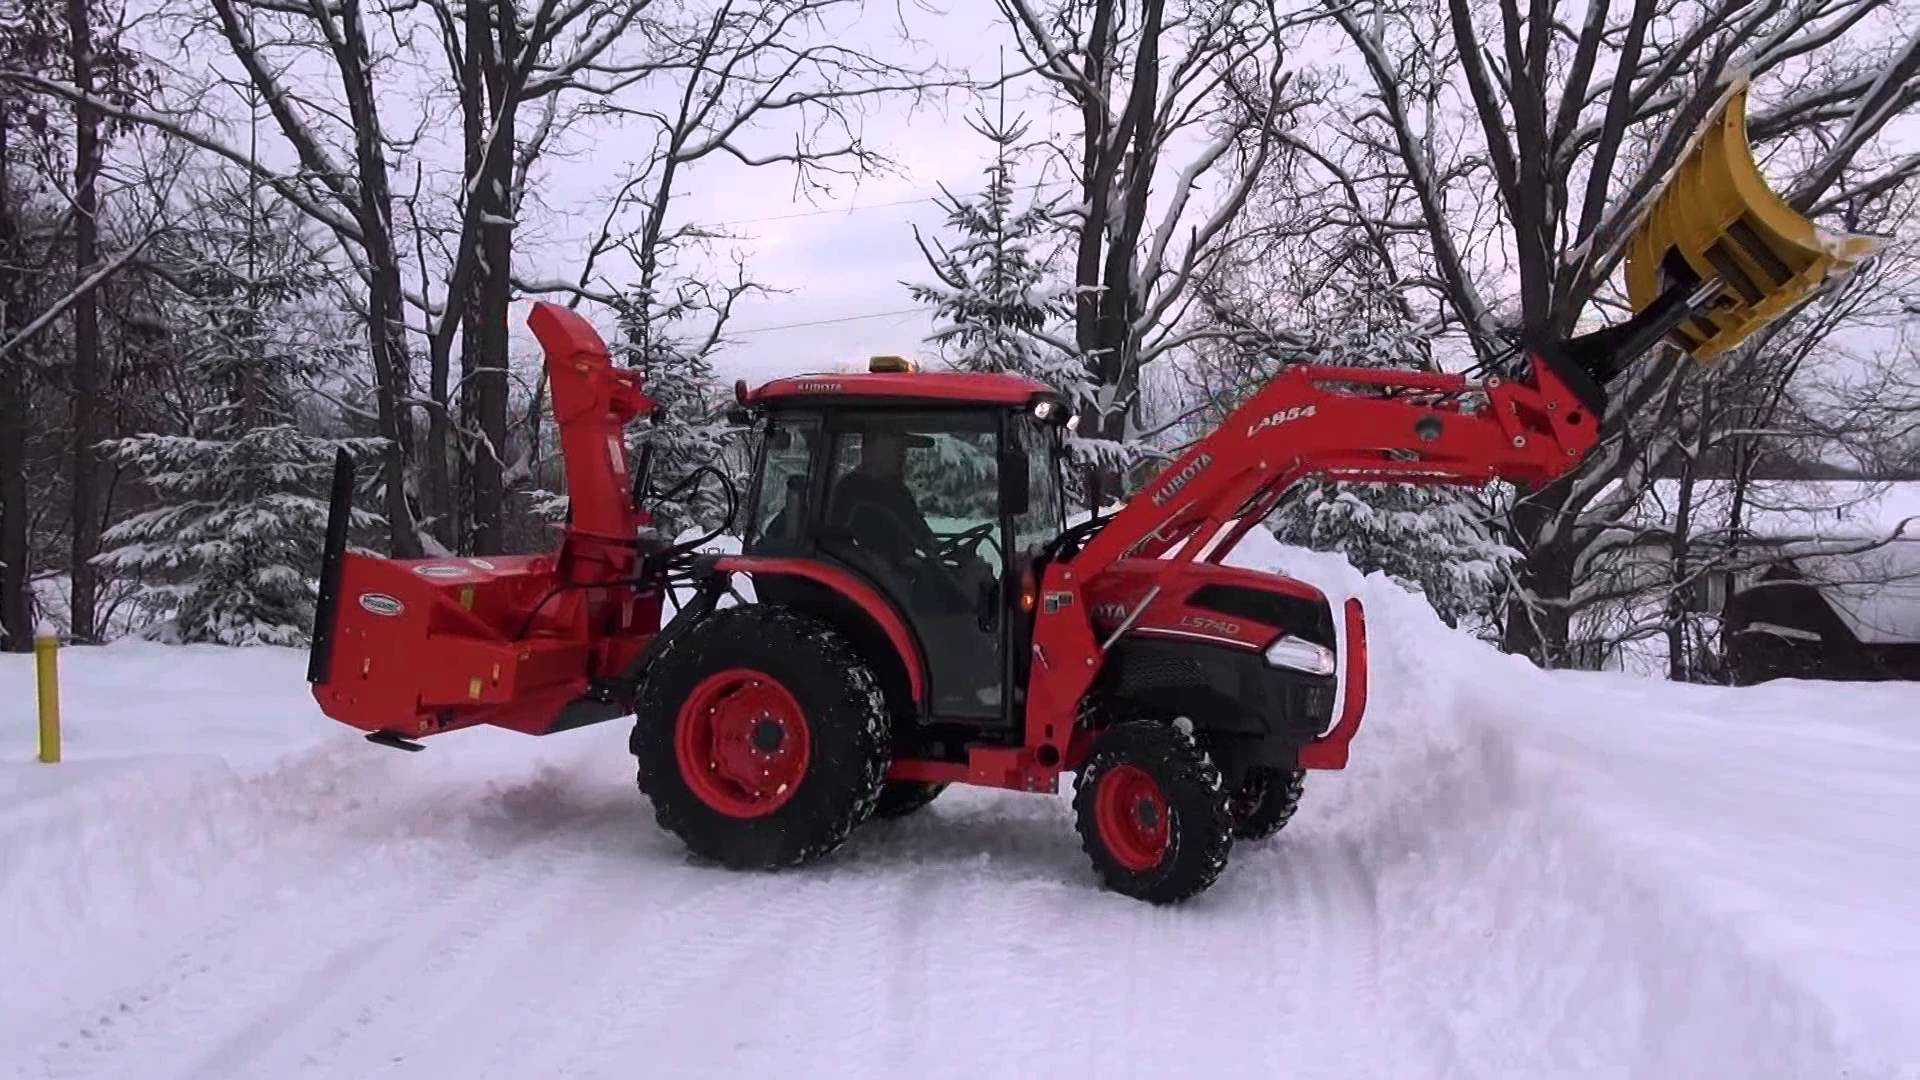 『kubota L5740 』manual Attachments Information Pics And Review